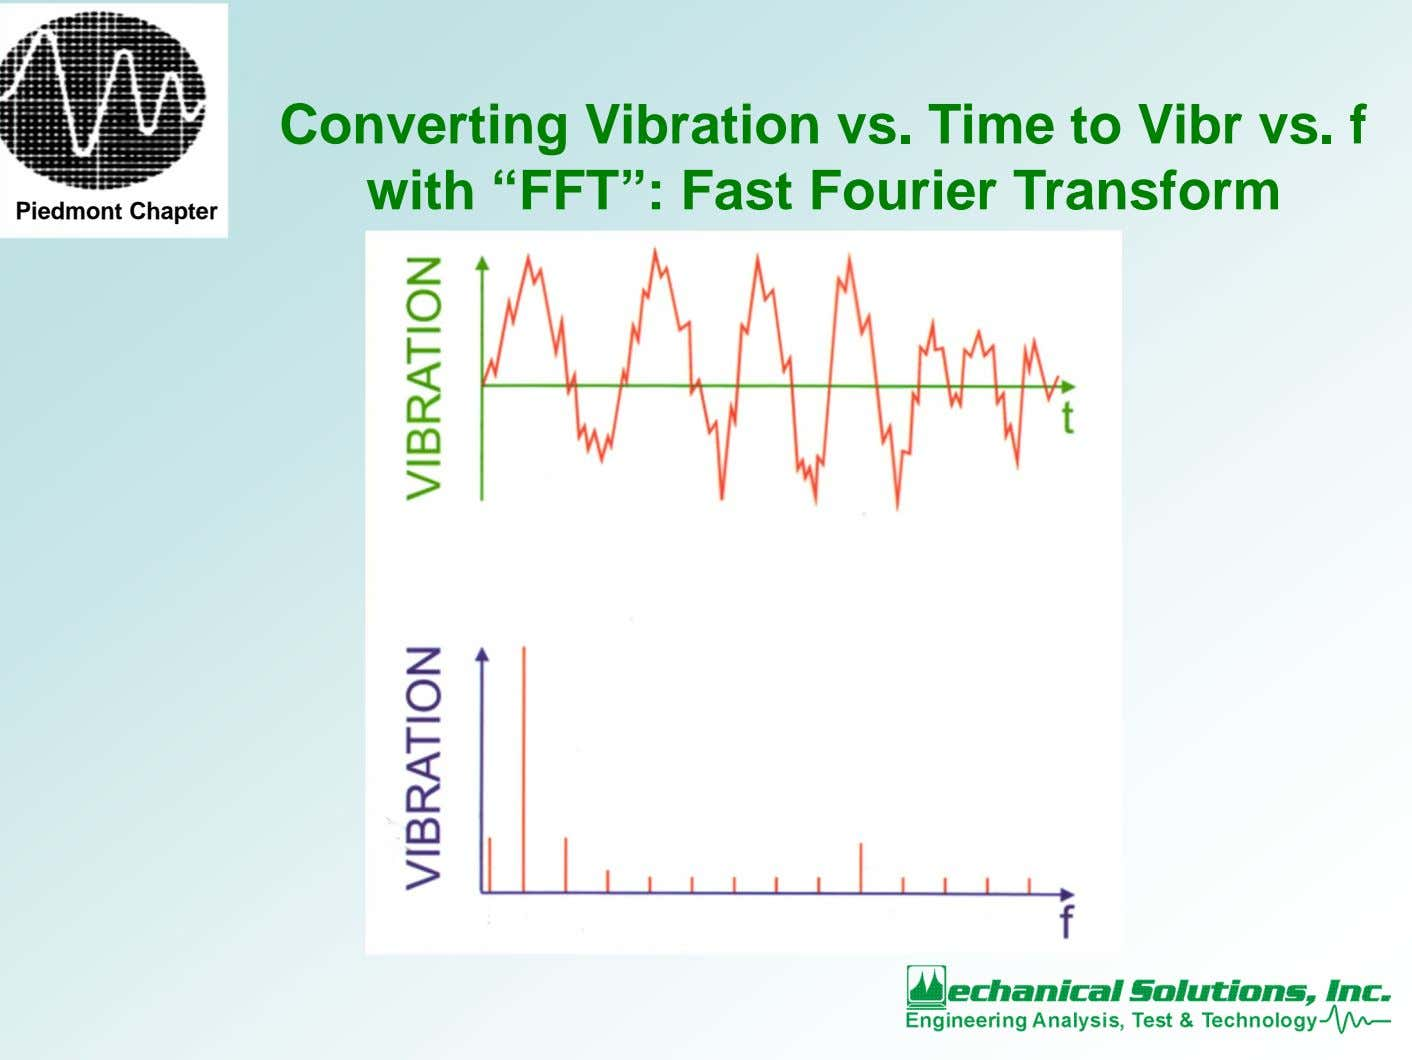 "Converting Vibration vs. Time to Vibr vs. f with ""FFT"": Fast Fourier Transform Piedmont Chapter"